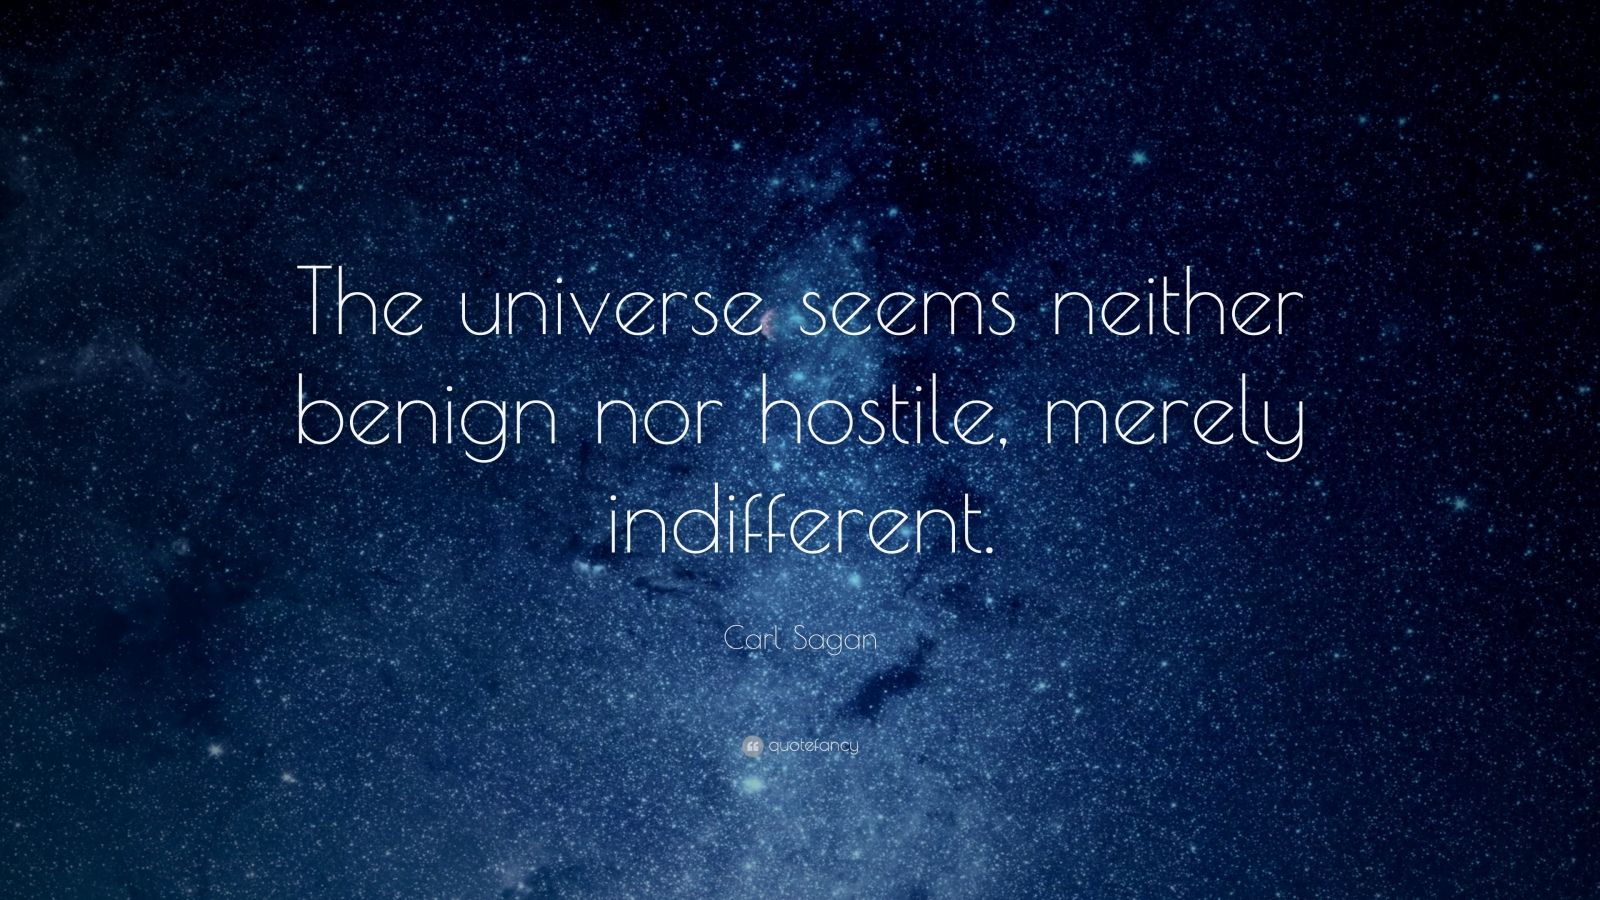 """Carl Sagan Quote: """"The universe seems neither benign nor hostile, merely indifferent."""""""